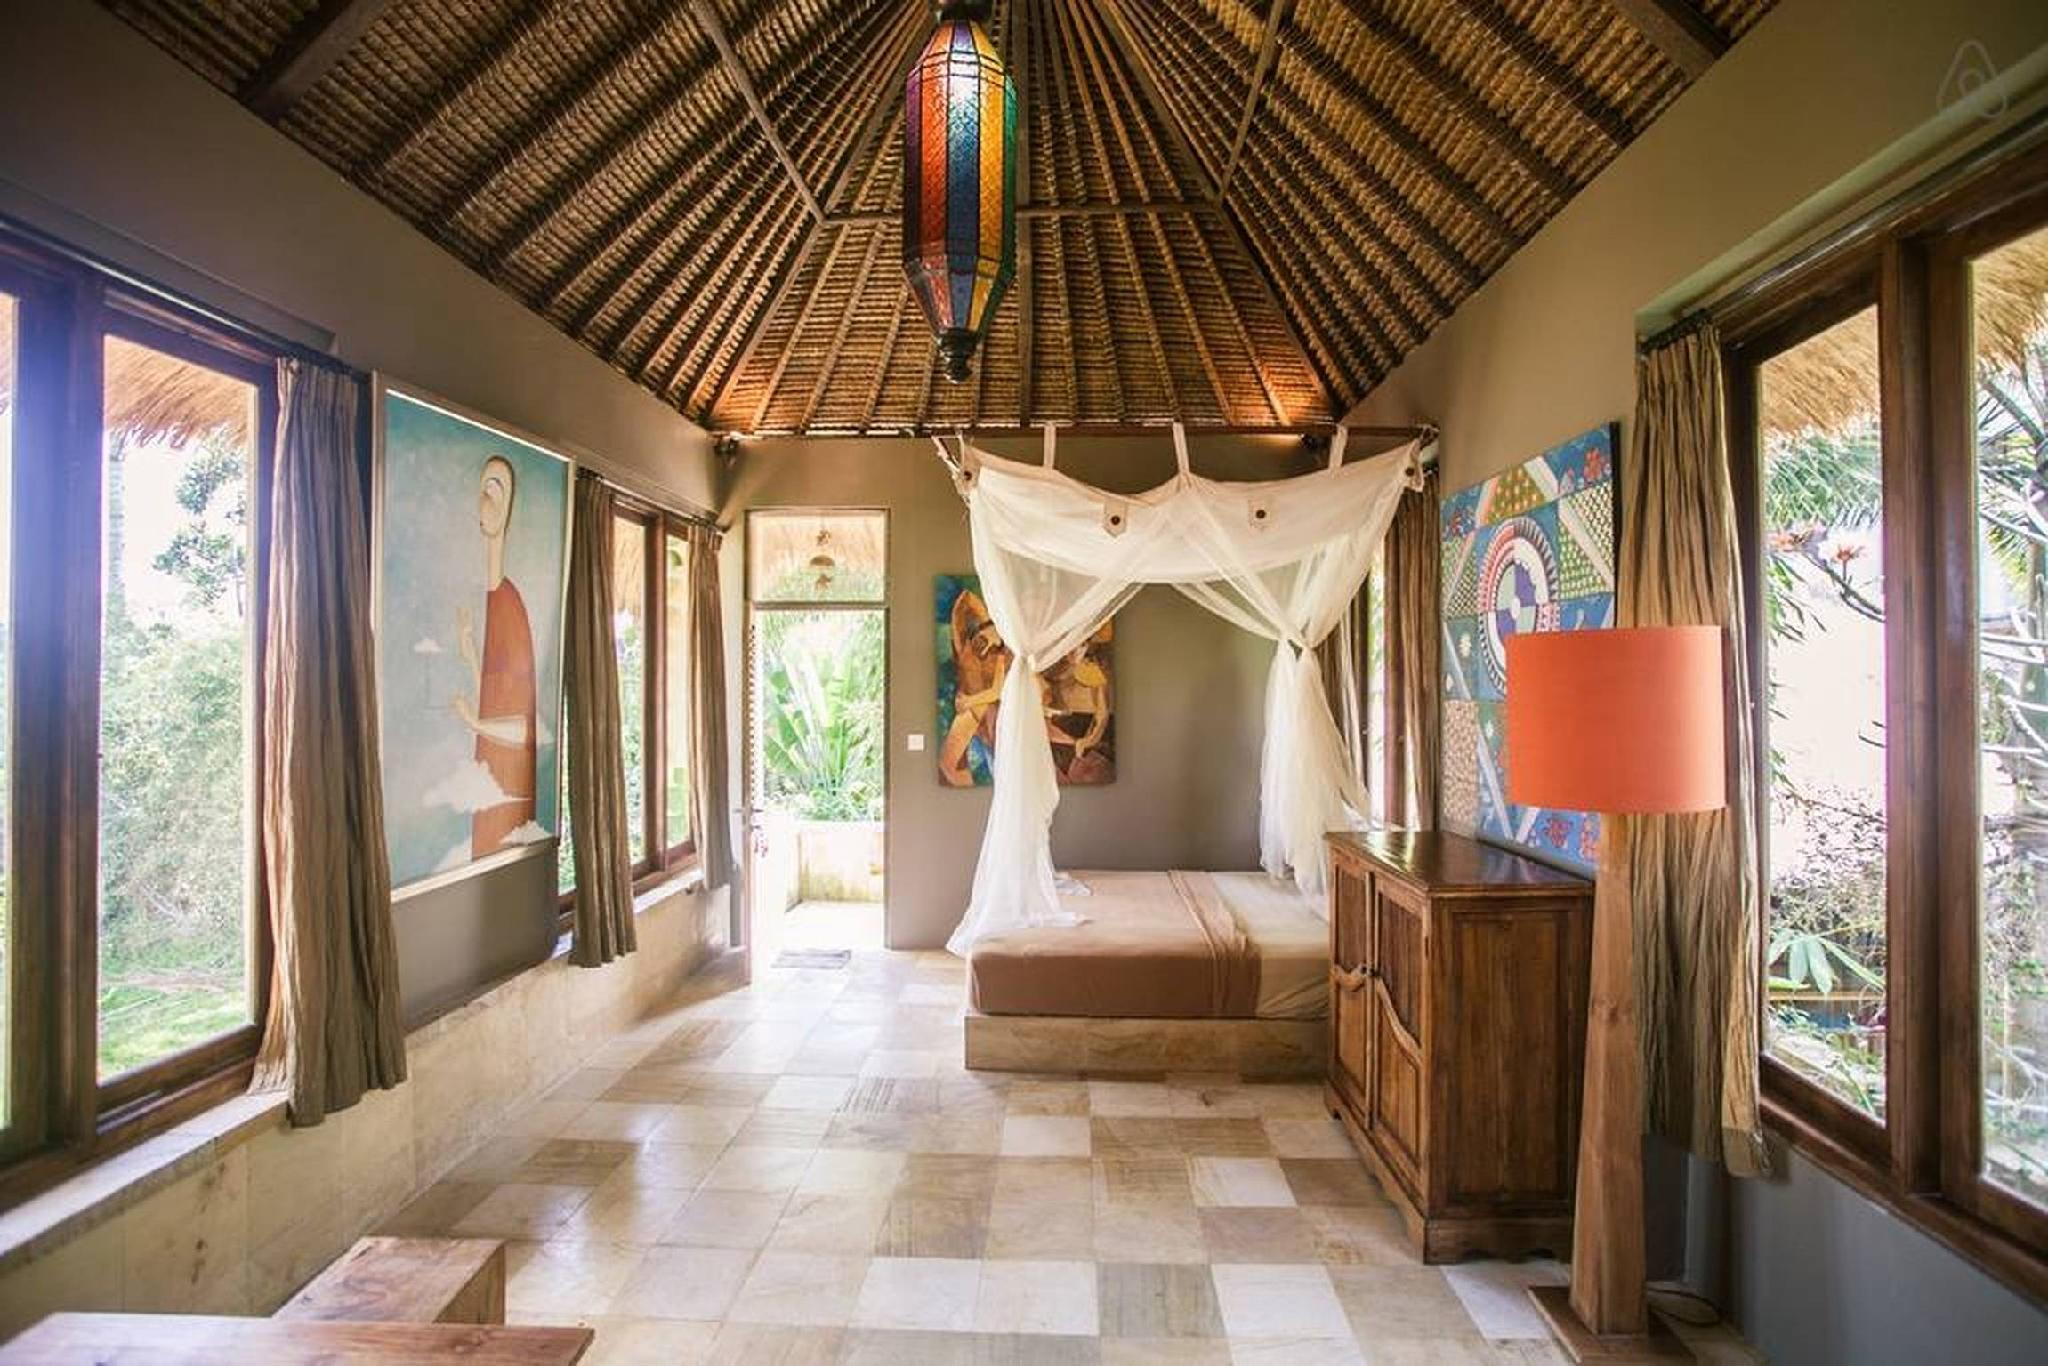 40 OFF Last Minute Amazing Suite In A Great Villa